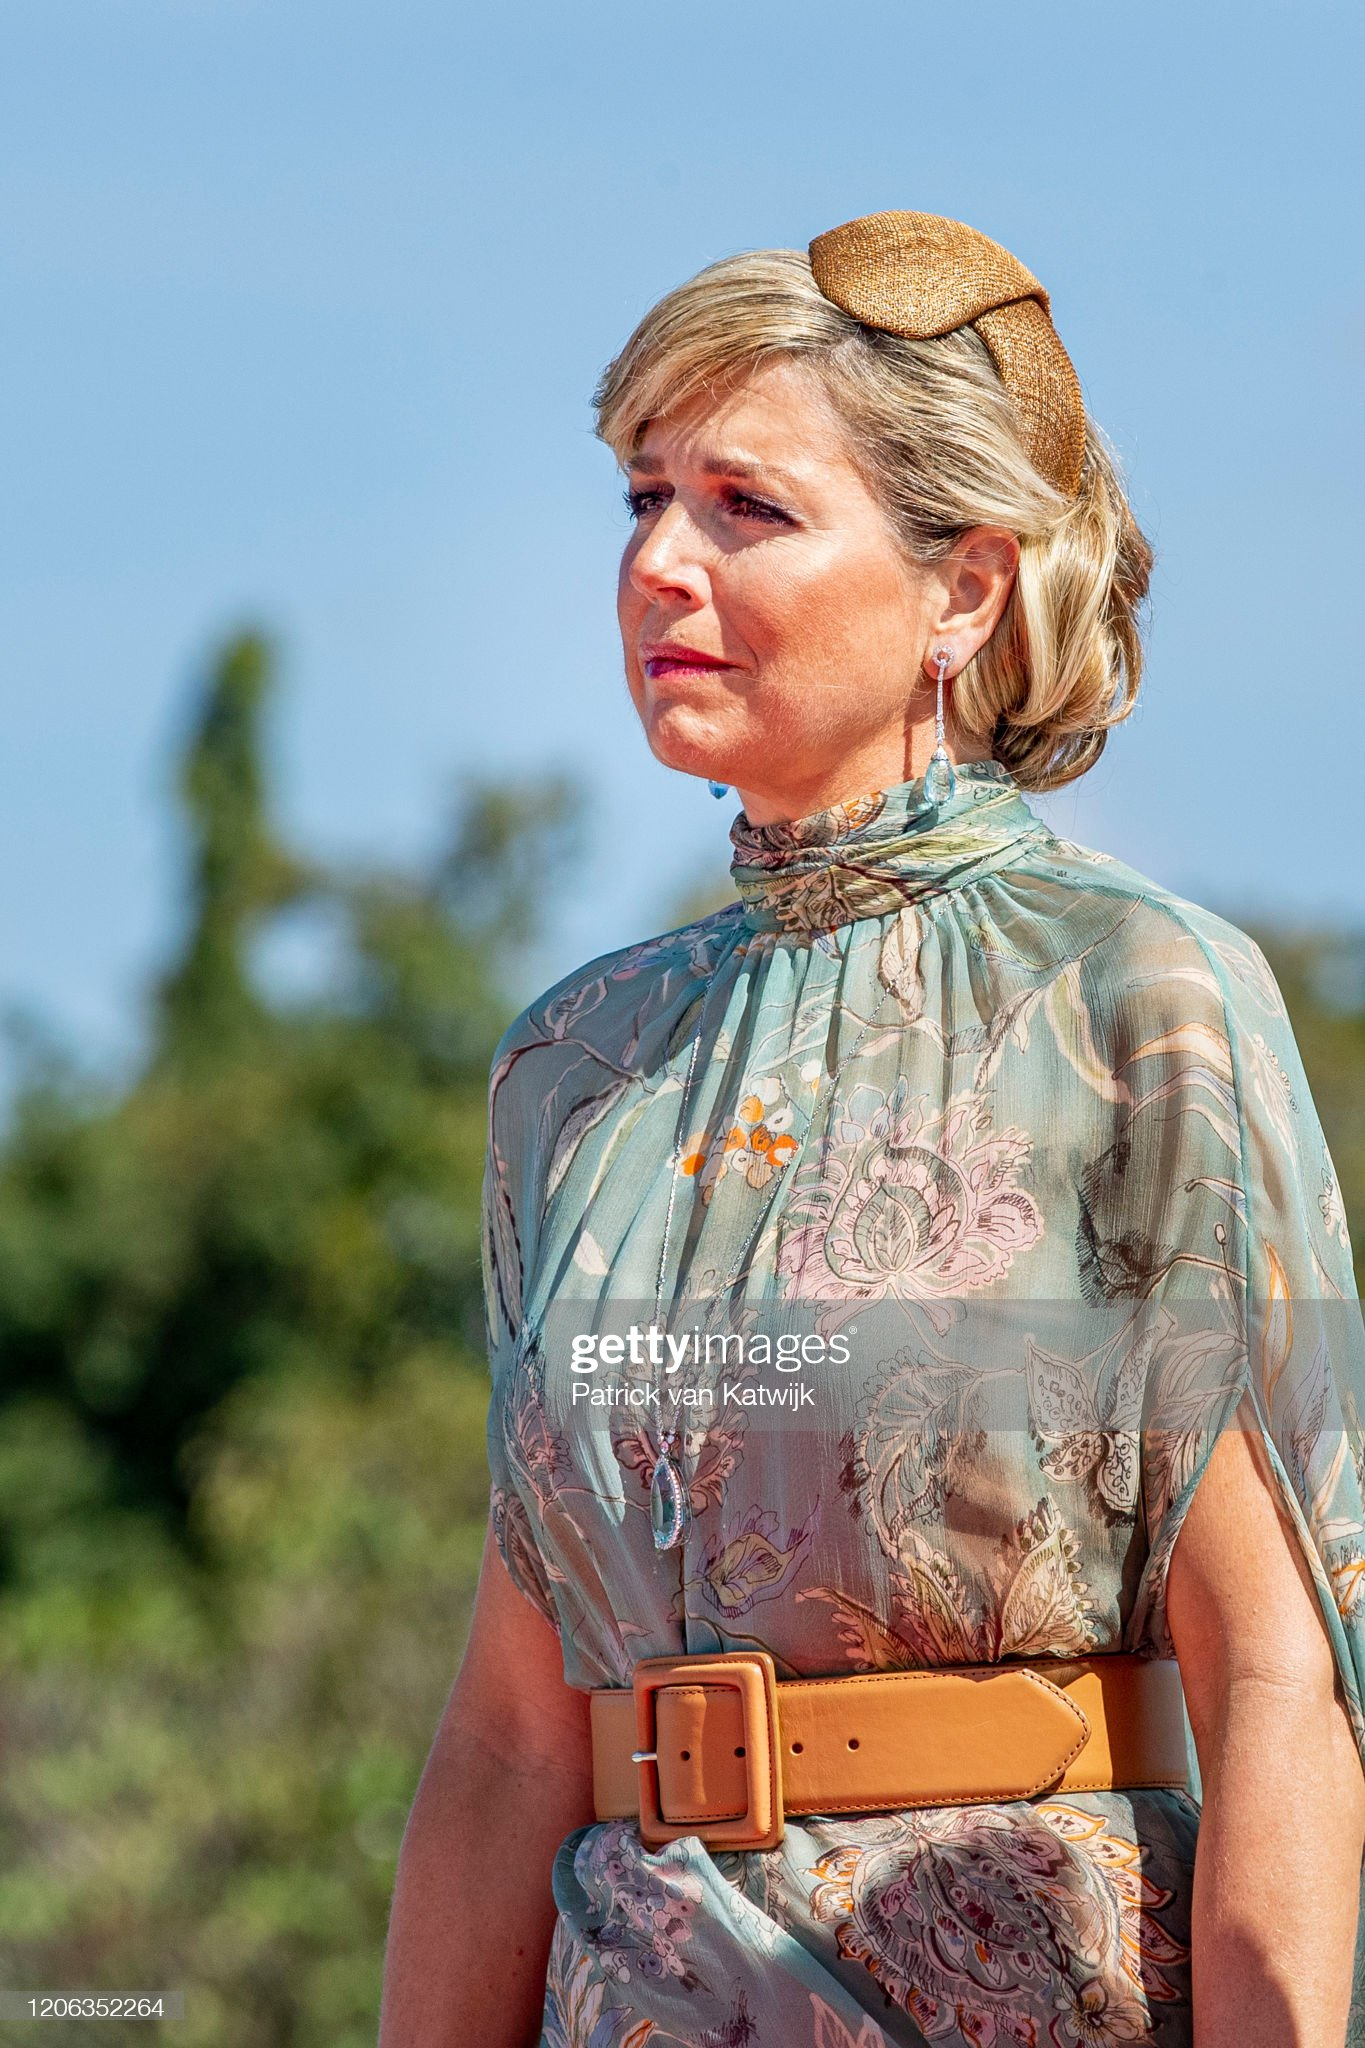 https://media.gettyimages.com/photos/queen-maxima-of-the-netherlands-during-a-wreath-laying-ceremony-at-picture-id1206352264?s=2048x2048